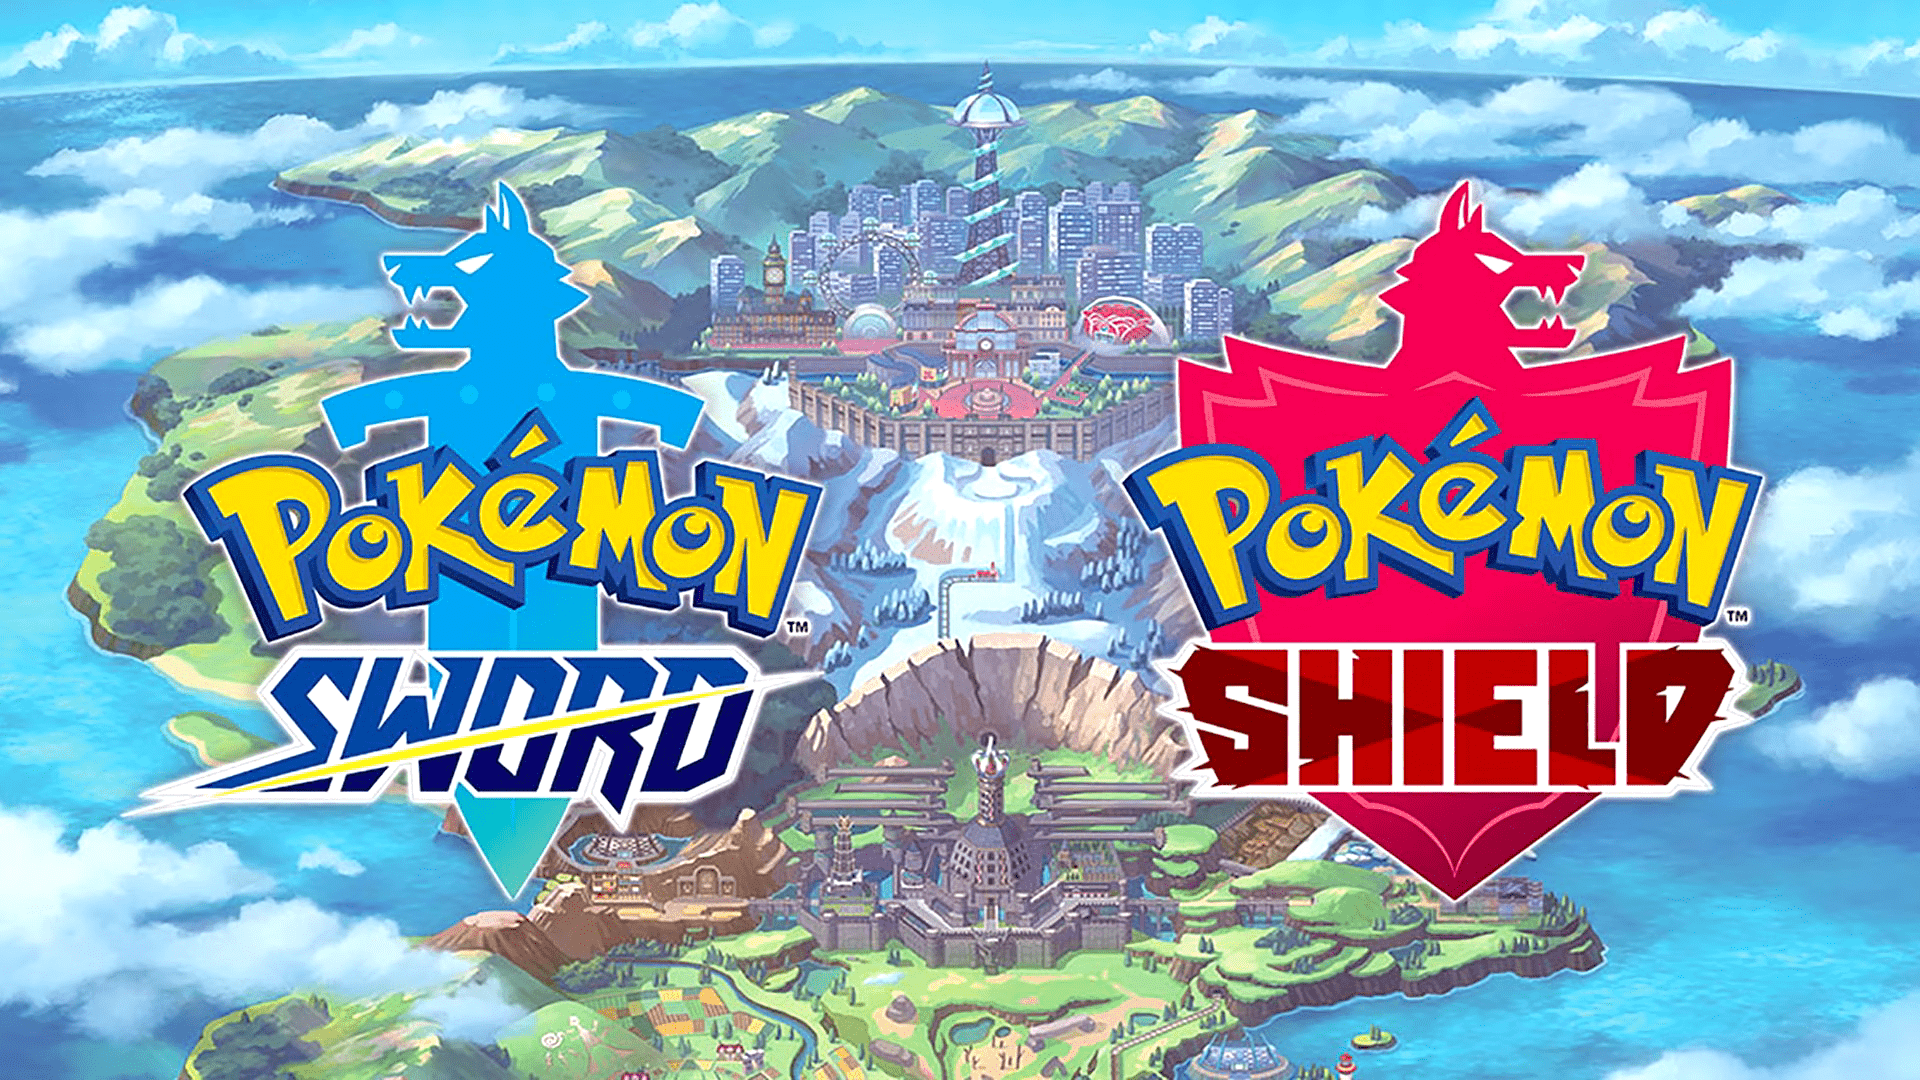 Details About Pokemon Sword & Shield's Wild Area Have Been Revealed, Fans Are Learning Much More About The Game To Come